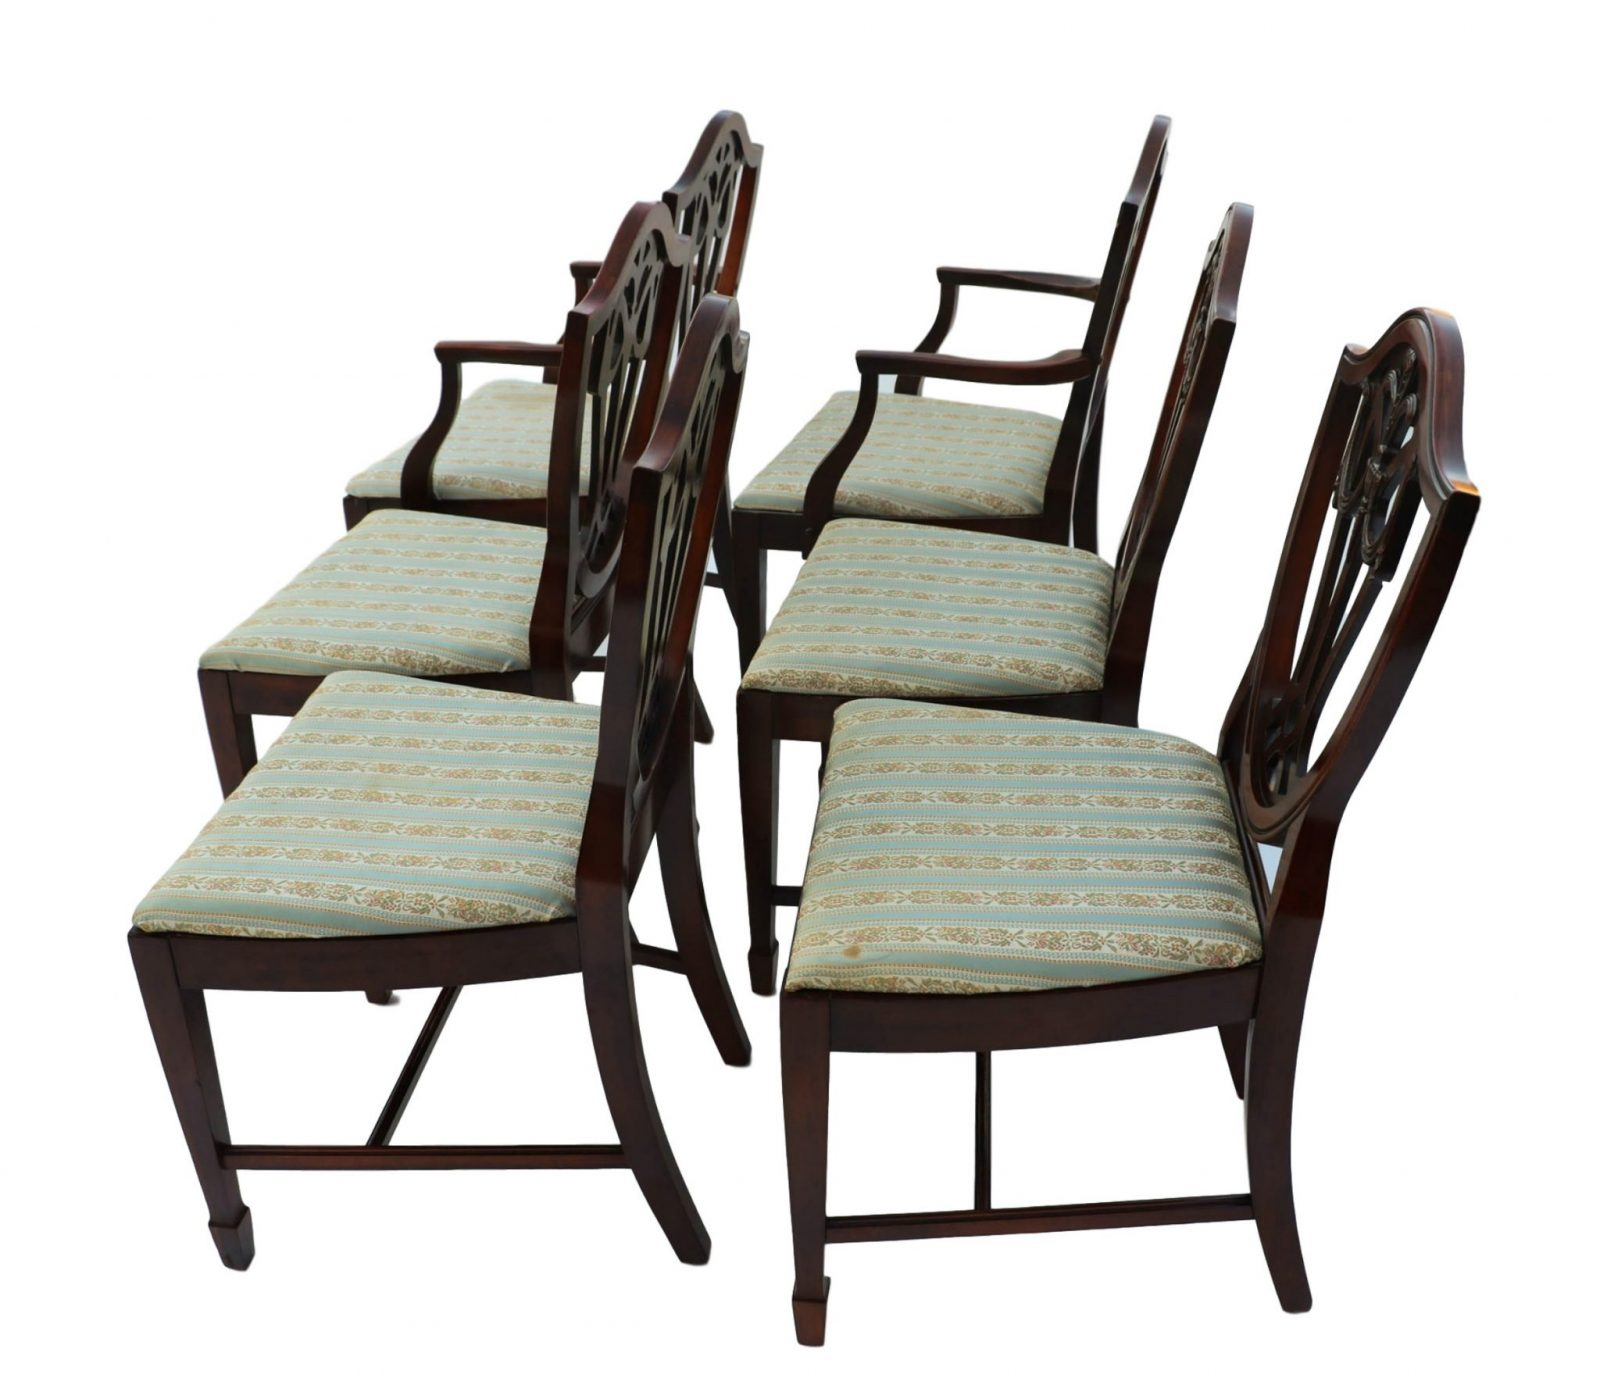 100 Shield Back Dining Room Chairs 8537 Antique  : Mahogany George III Style Hepplewhite Shield Back Dining Chairs Six 7 from 45.63.76.191 size 2048 x 1759 jpeg 248kB